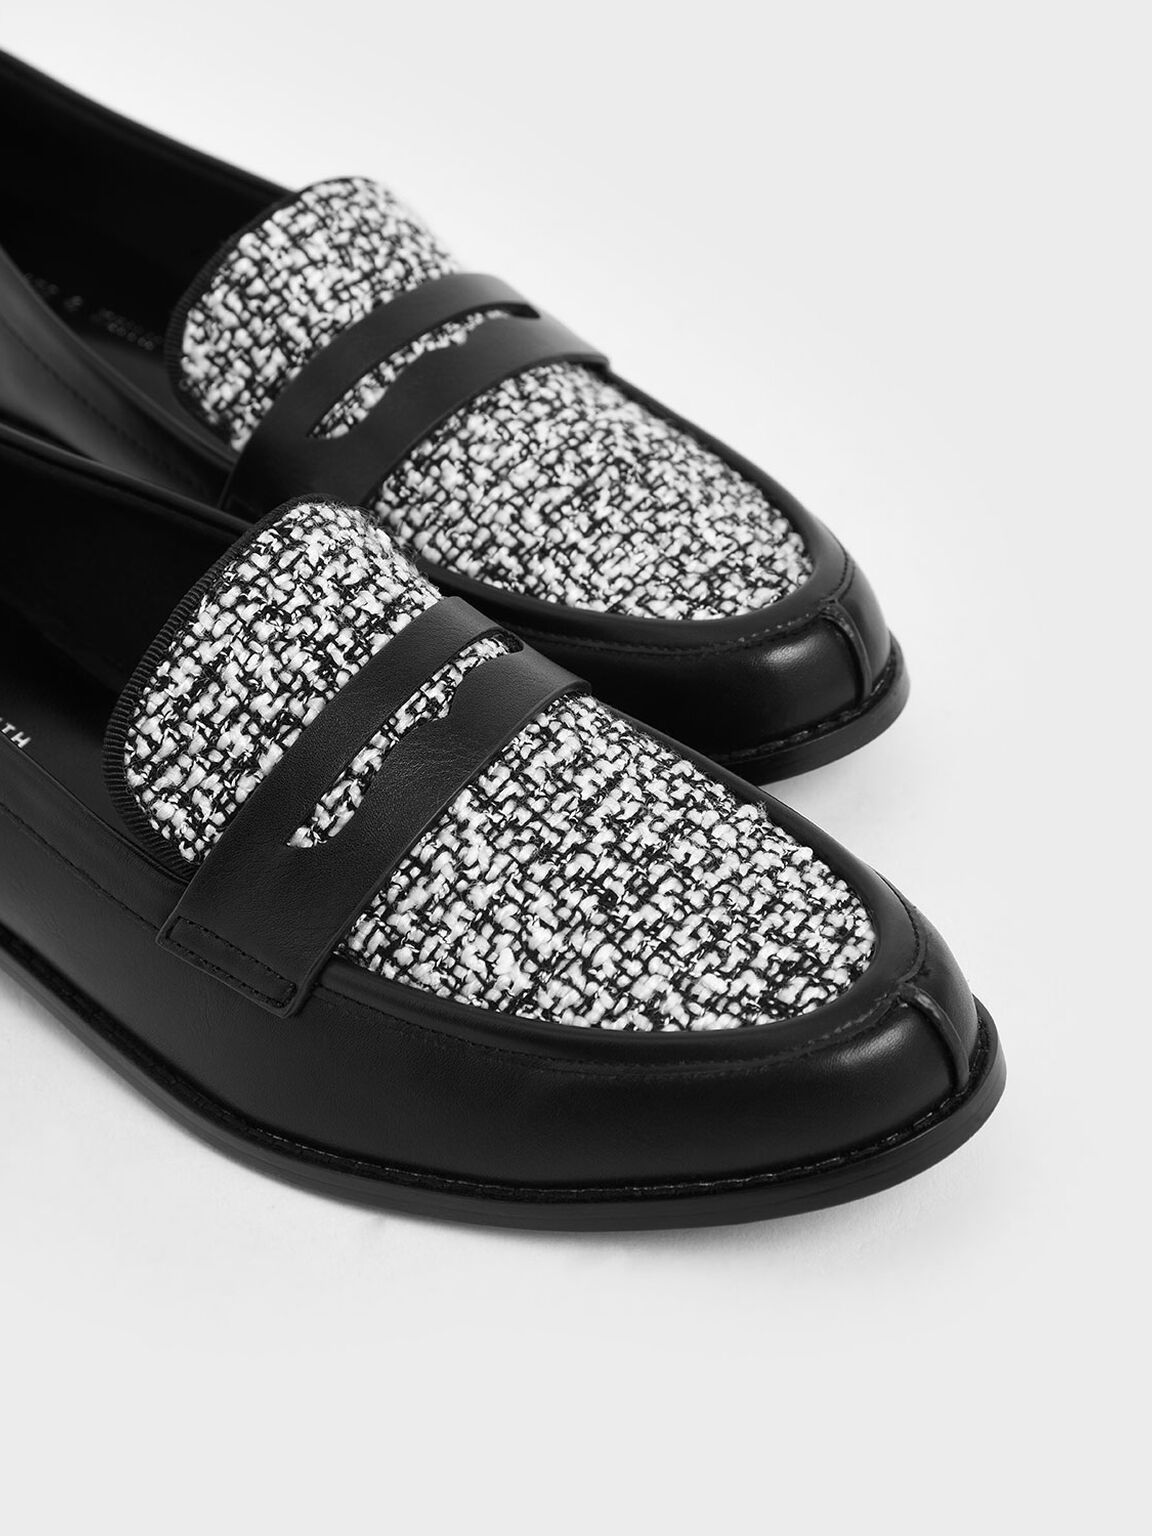 Classic Tweed Penny Loafers, Multi, hi-res